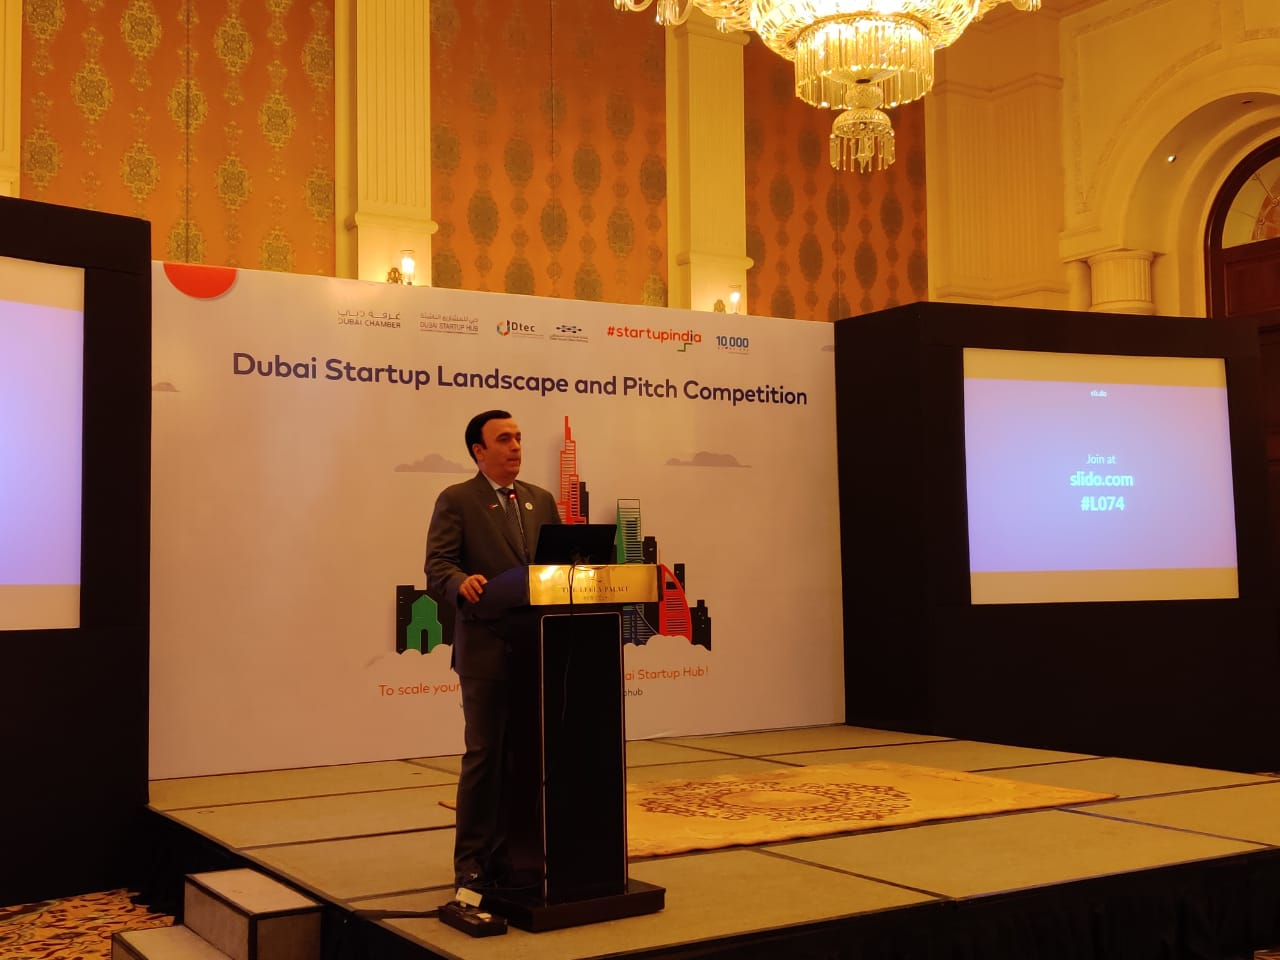 Al Banna stressed the importance of collaboration between the UAE and India in emerging sectors